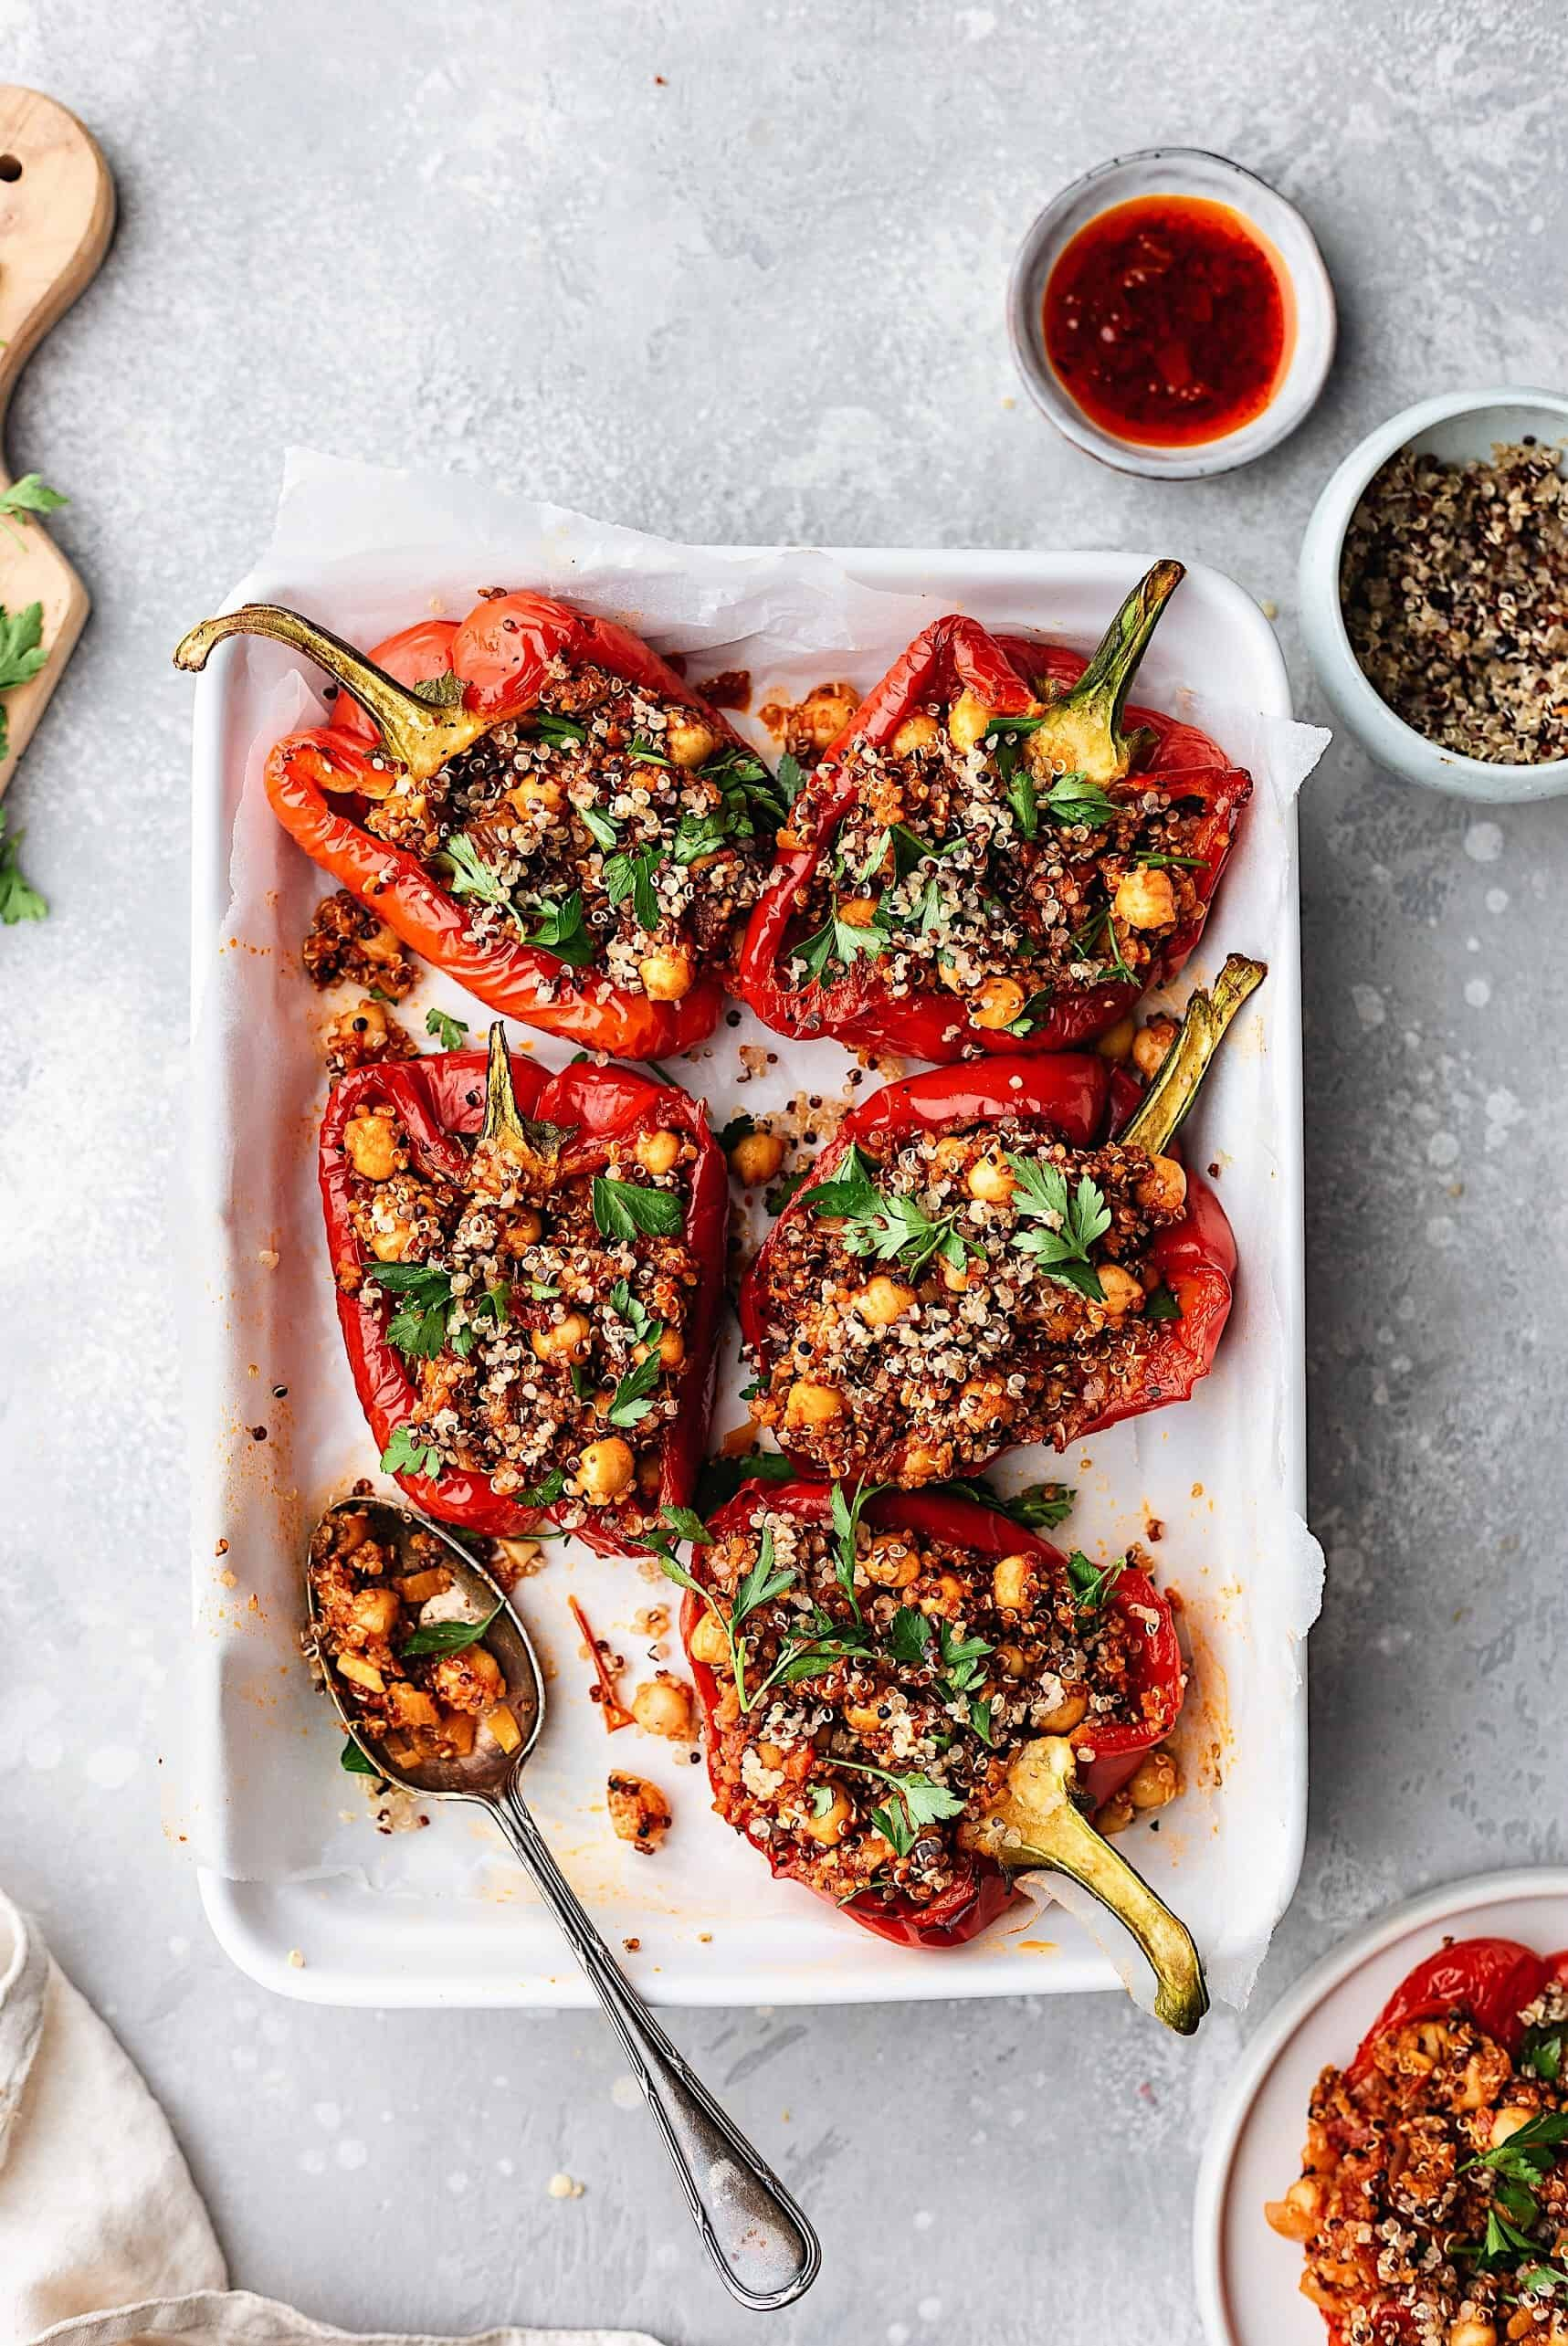 Chickpea and Quinoa Harissa Stuffed Peppers – Cupful of Kale